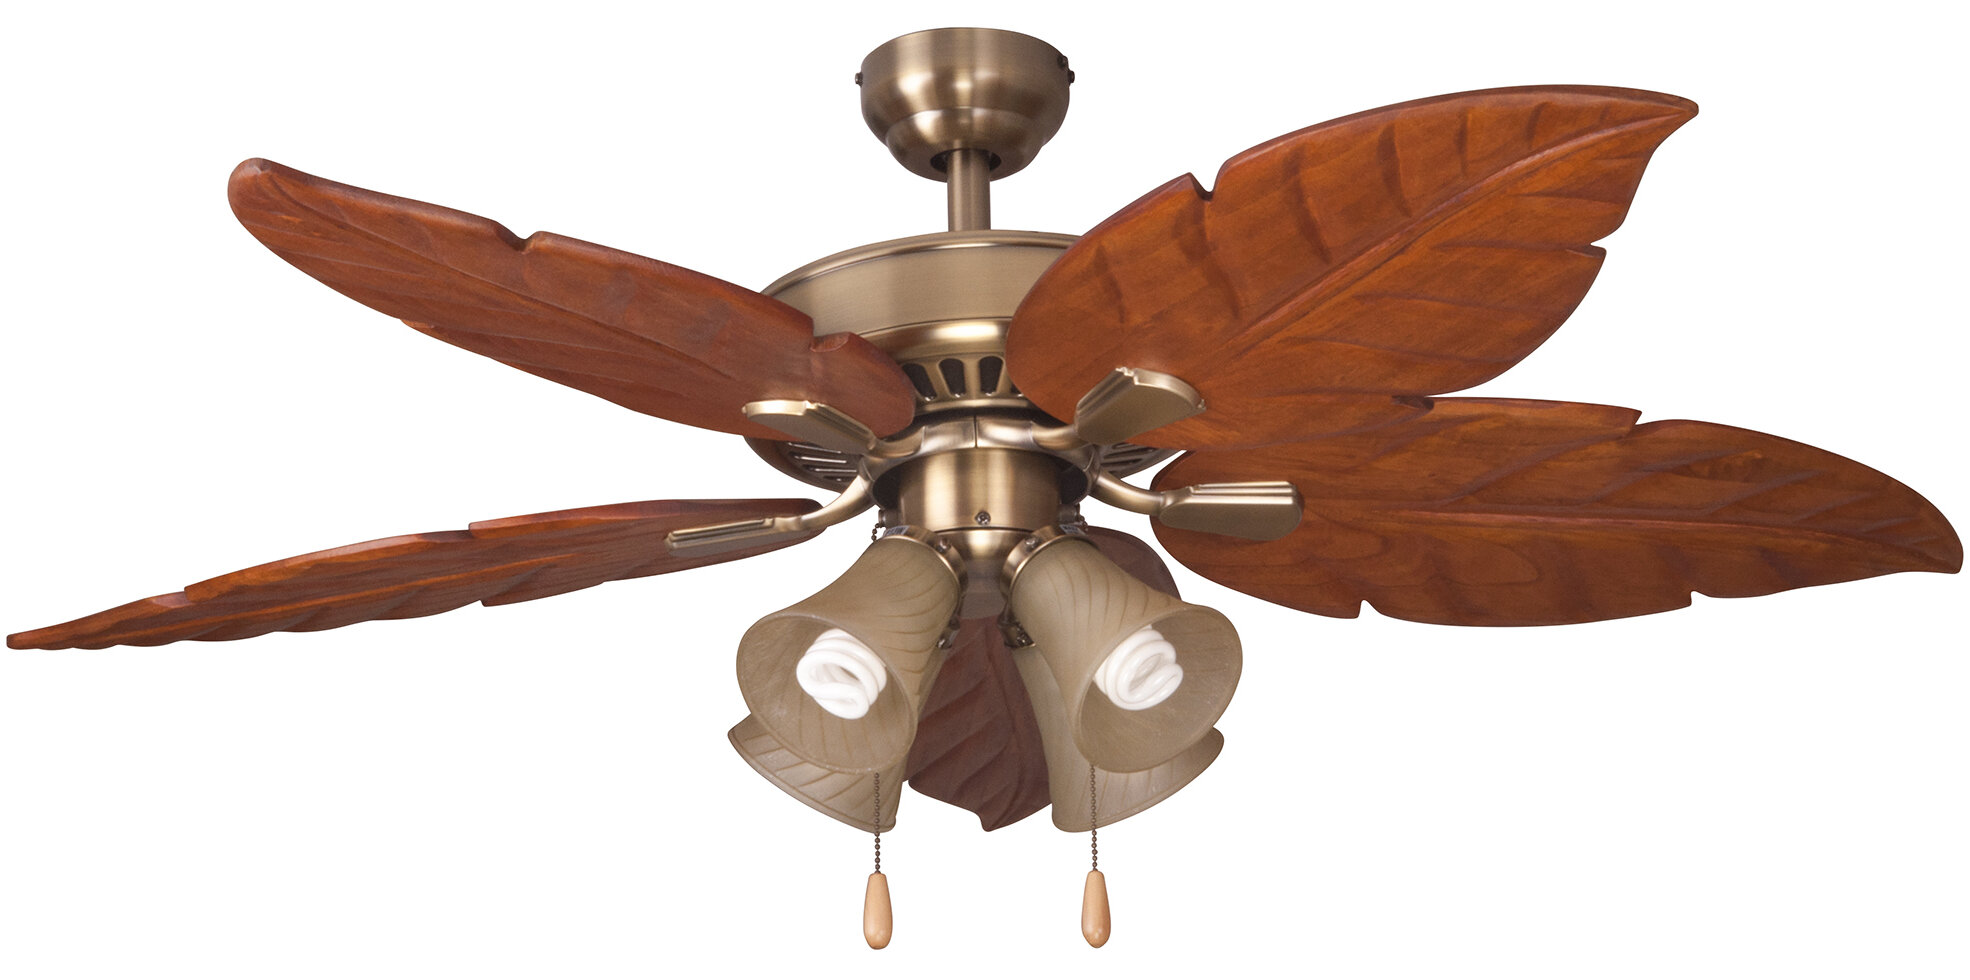 Bayou breeze 52 kay indoor 5 blade ceiling fan with remote ebay bayou breeze 52 034 kay indoor 5 blade aloadofball Images